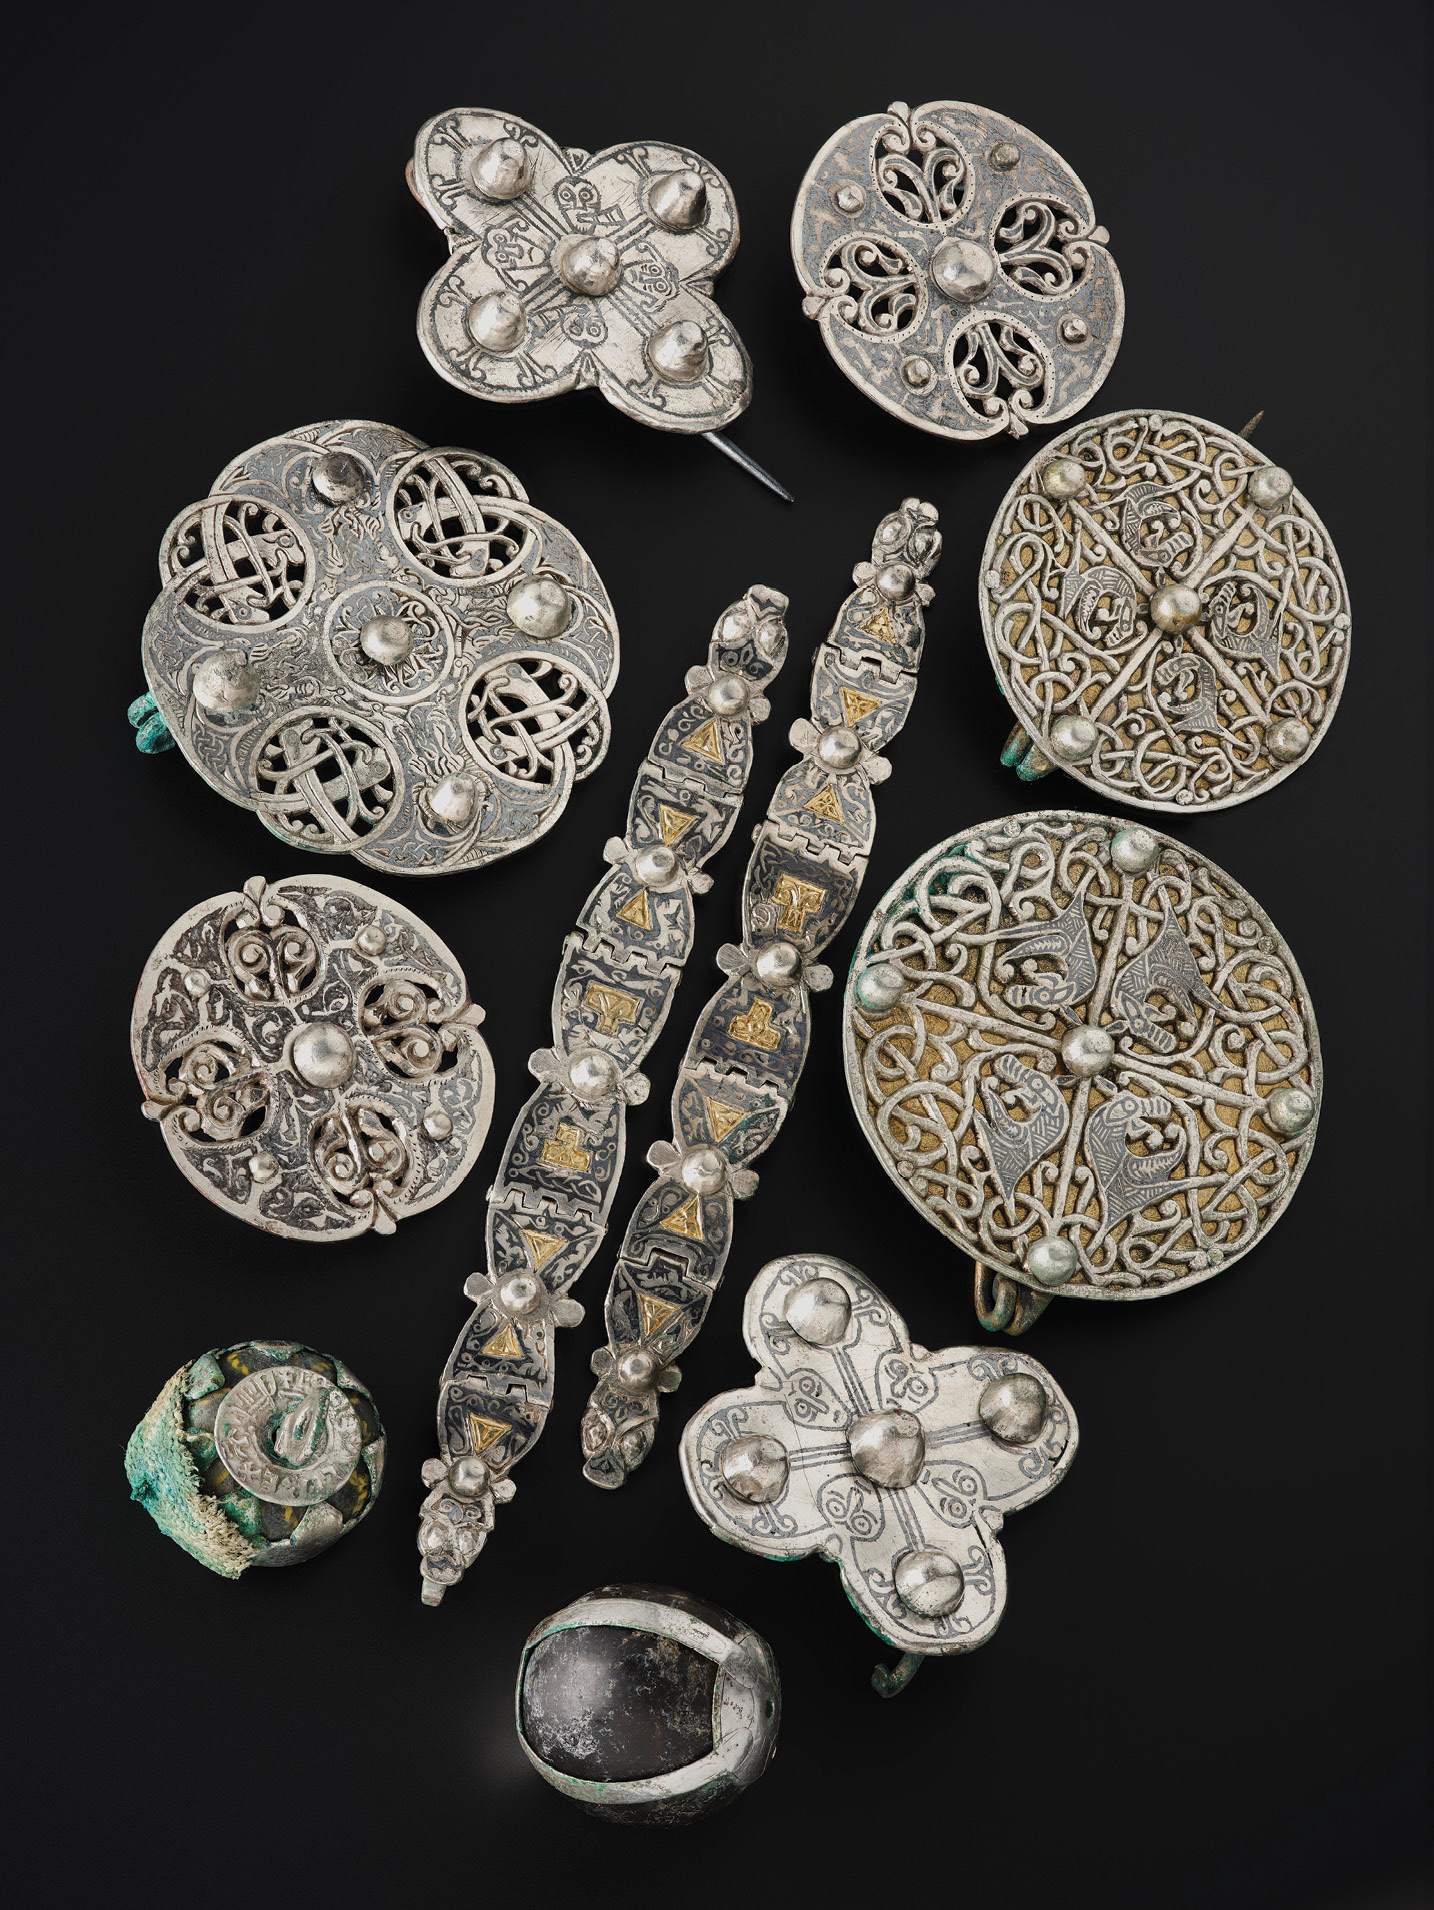 RIGHT A lidded vessel contained a host of unusual objects, including these Anglo-Saxon brooches and straps, as well as unusual pendants of glass and rock crystal. Anglo-Saxon metalwork is rarely found in Scotland, and many of the designs within the vessel are unique.